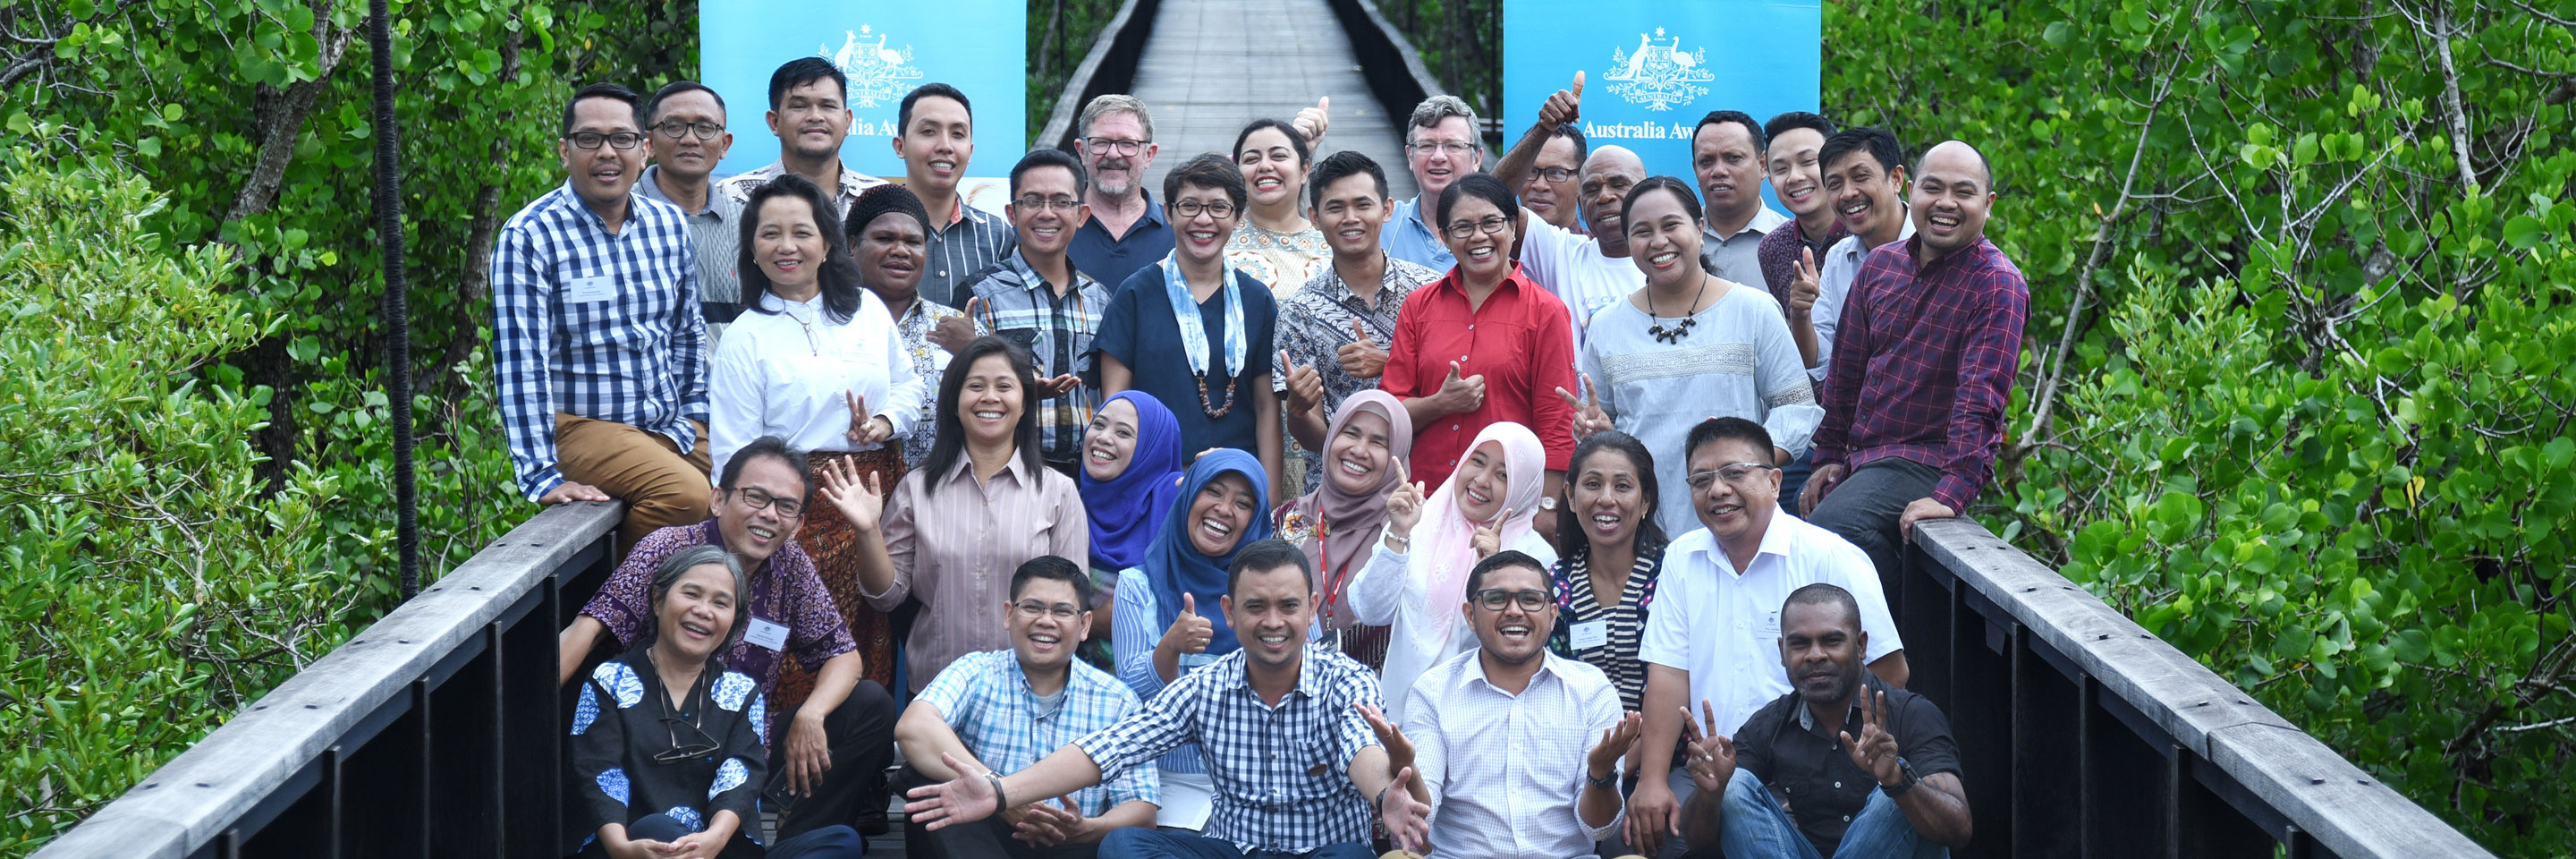 Tourism practitioners and policy makers from Eastern Indonesia participate in Sustainable Tourism for Regional Growth short course to improve linkages between tourism stakeholders and enhance business planning process.